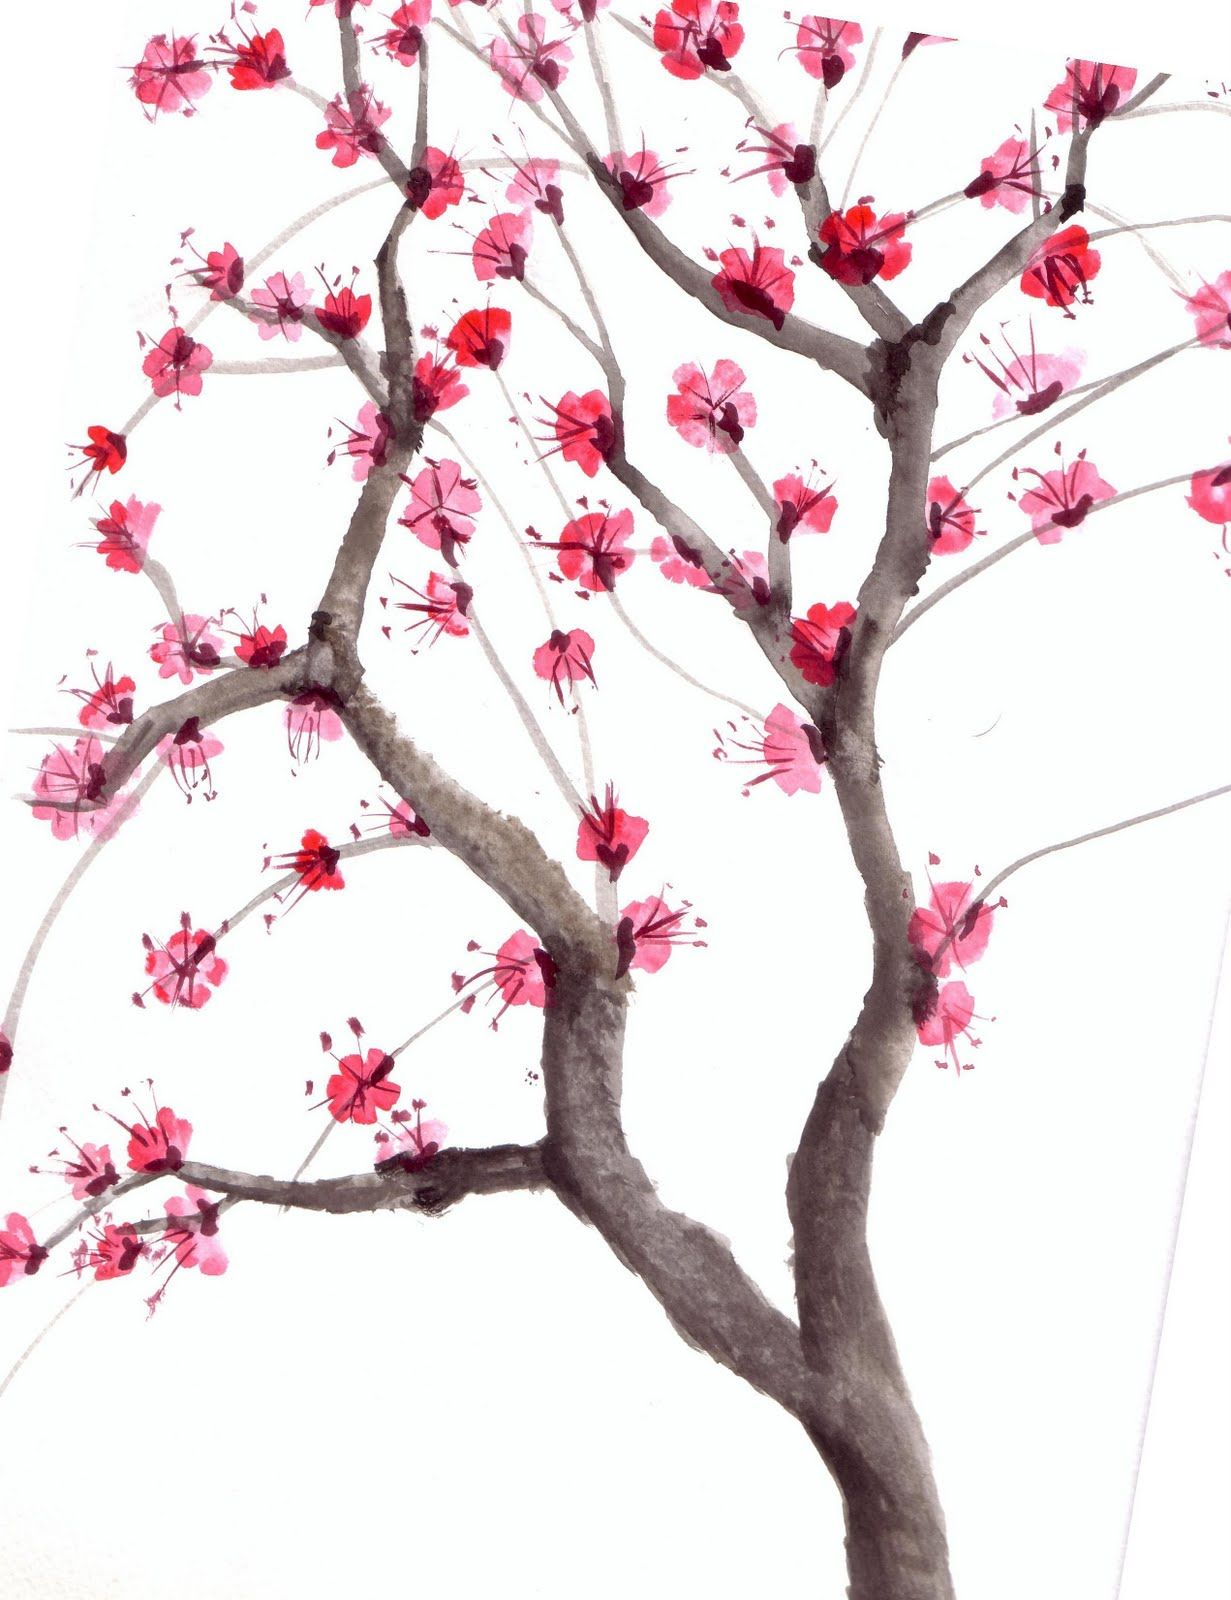 Chuzzlewit Chinese Blossom Tree Cherry Blossom Art Bonsai Tree Painting Chinese Blossom